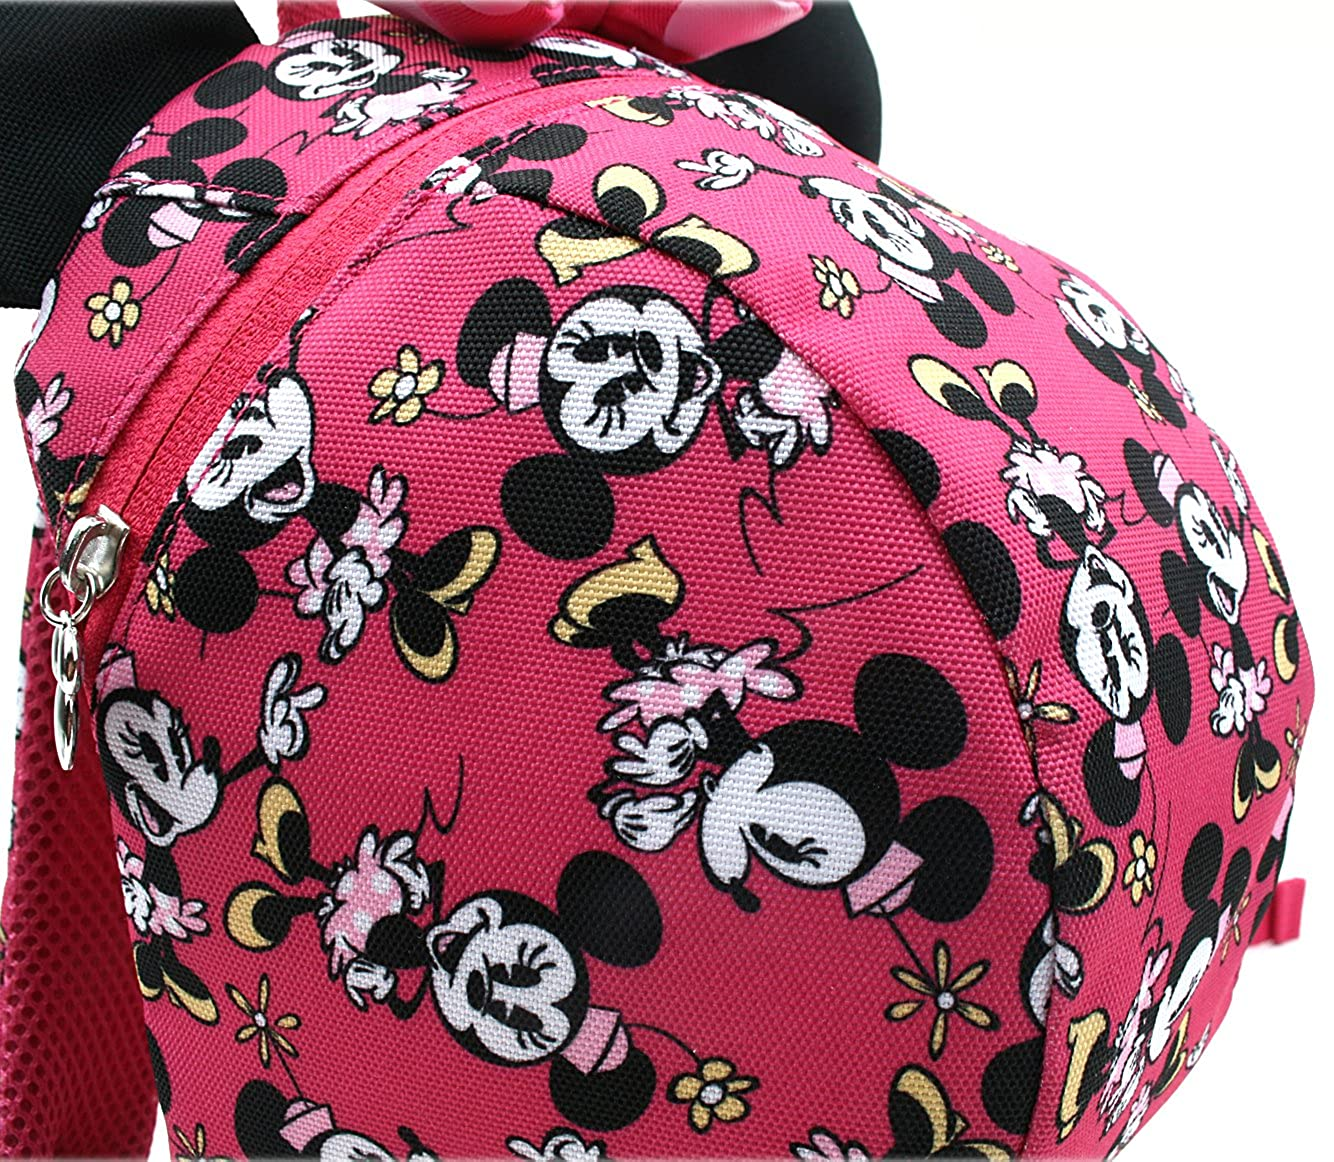 Disney Mickey Minnie Mouse Dome Small Backpack with a Strap to Prevent Toddler Children from Missing